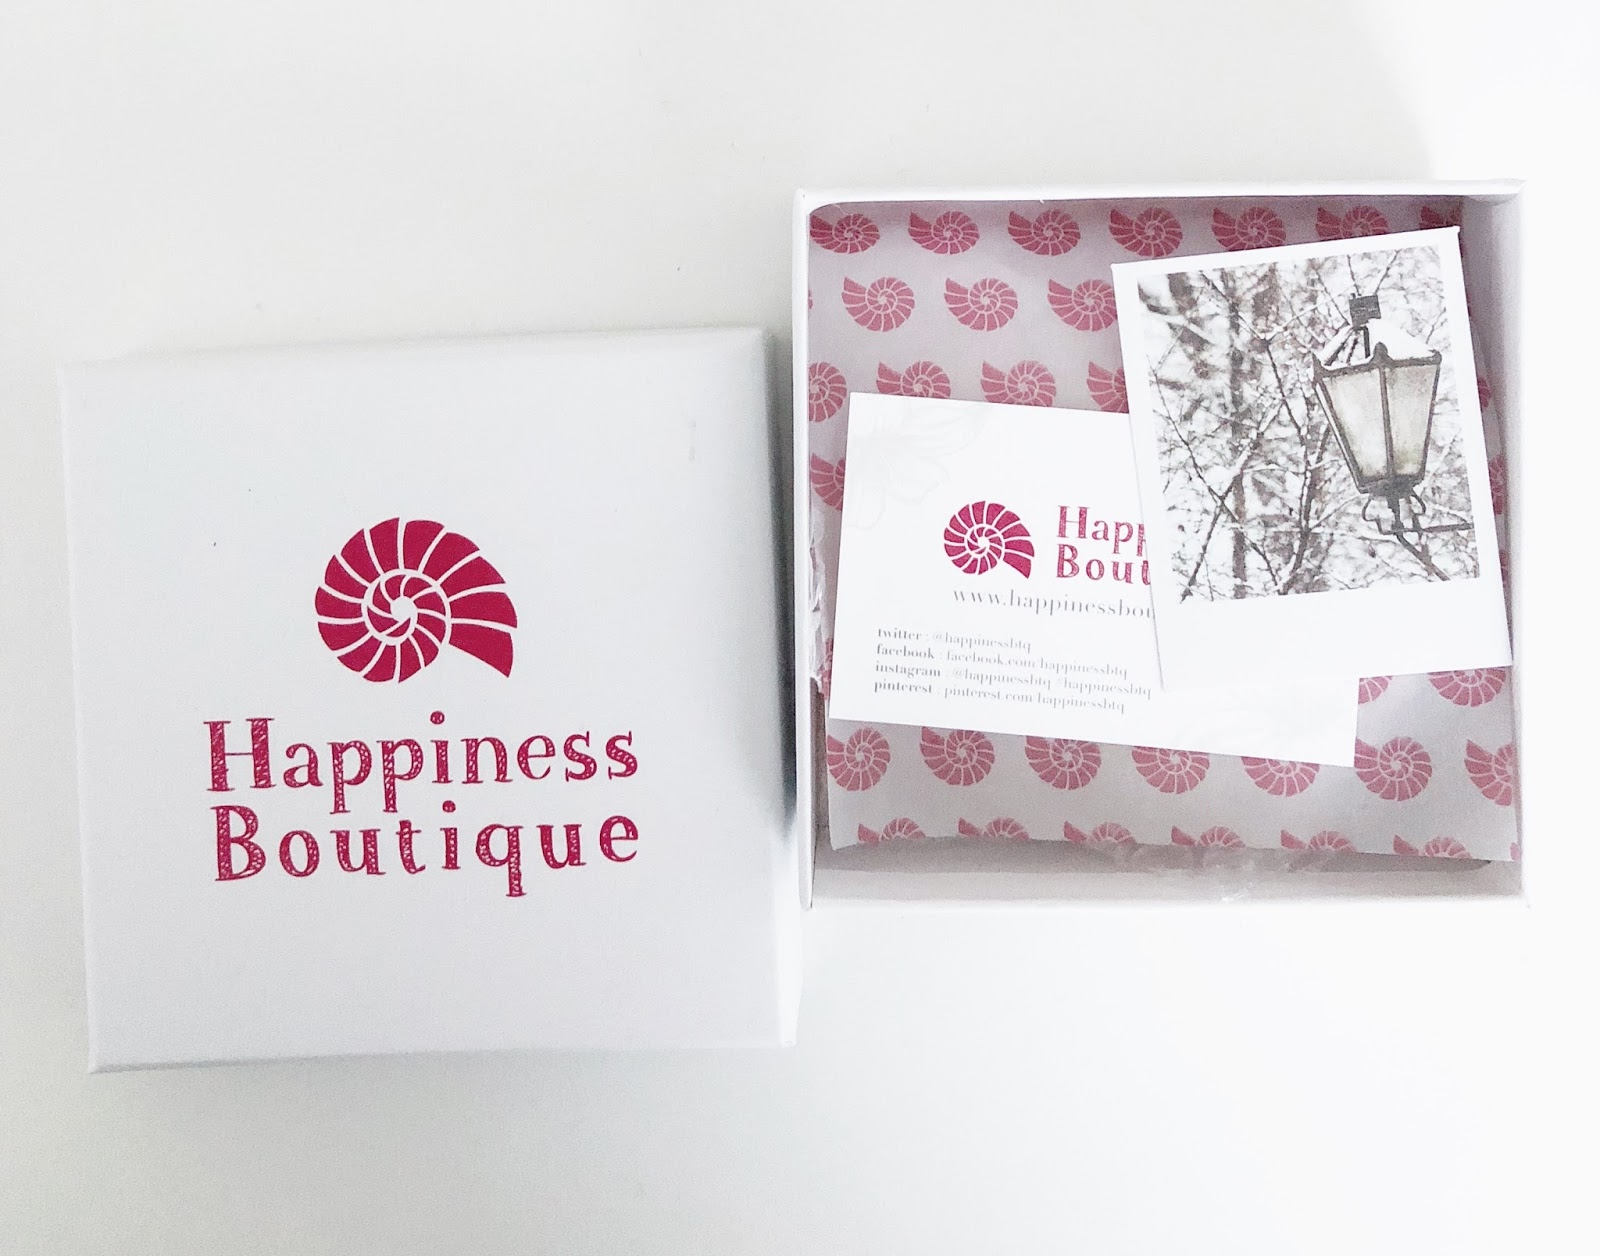 serenbird-happiness boutique